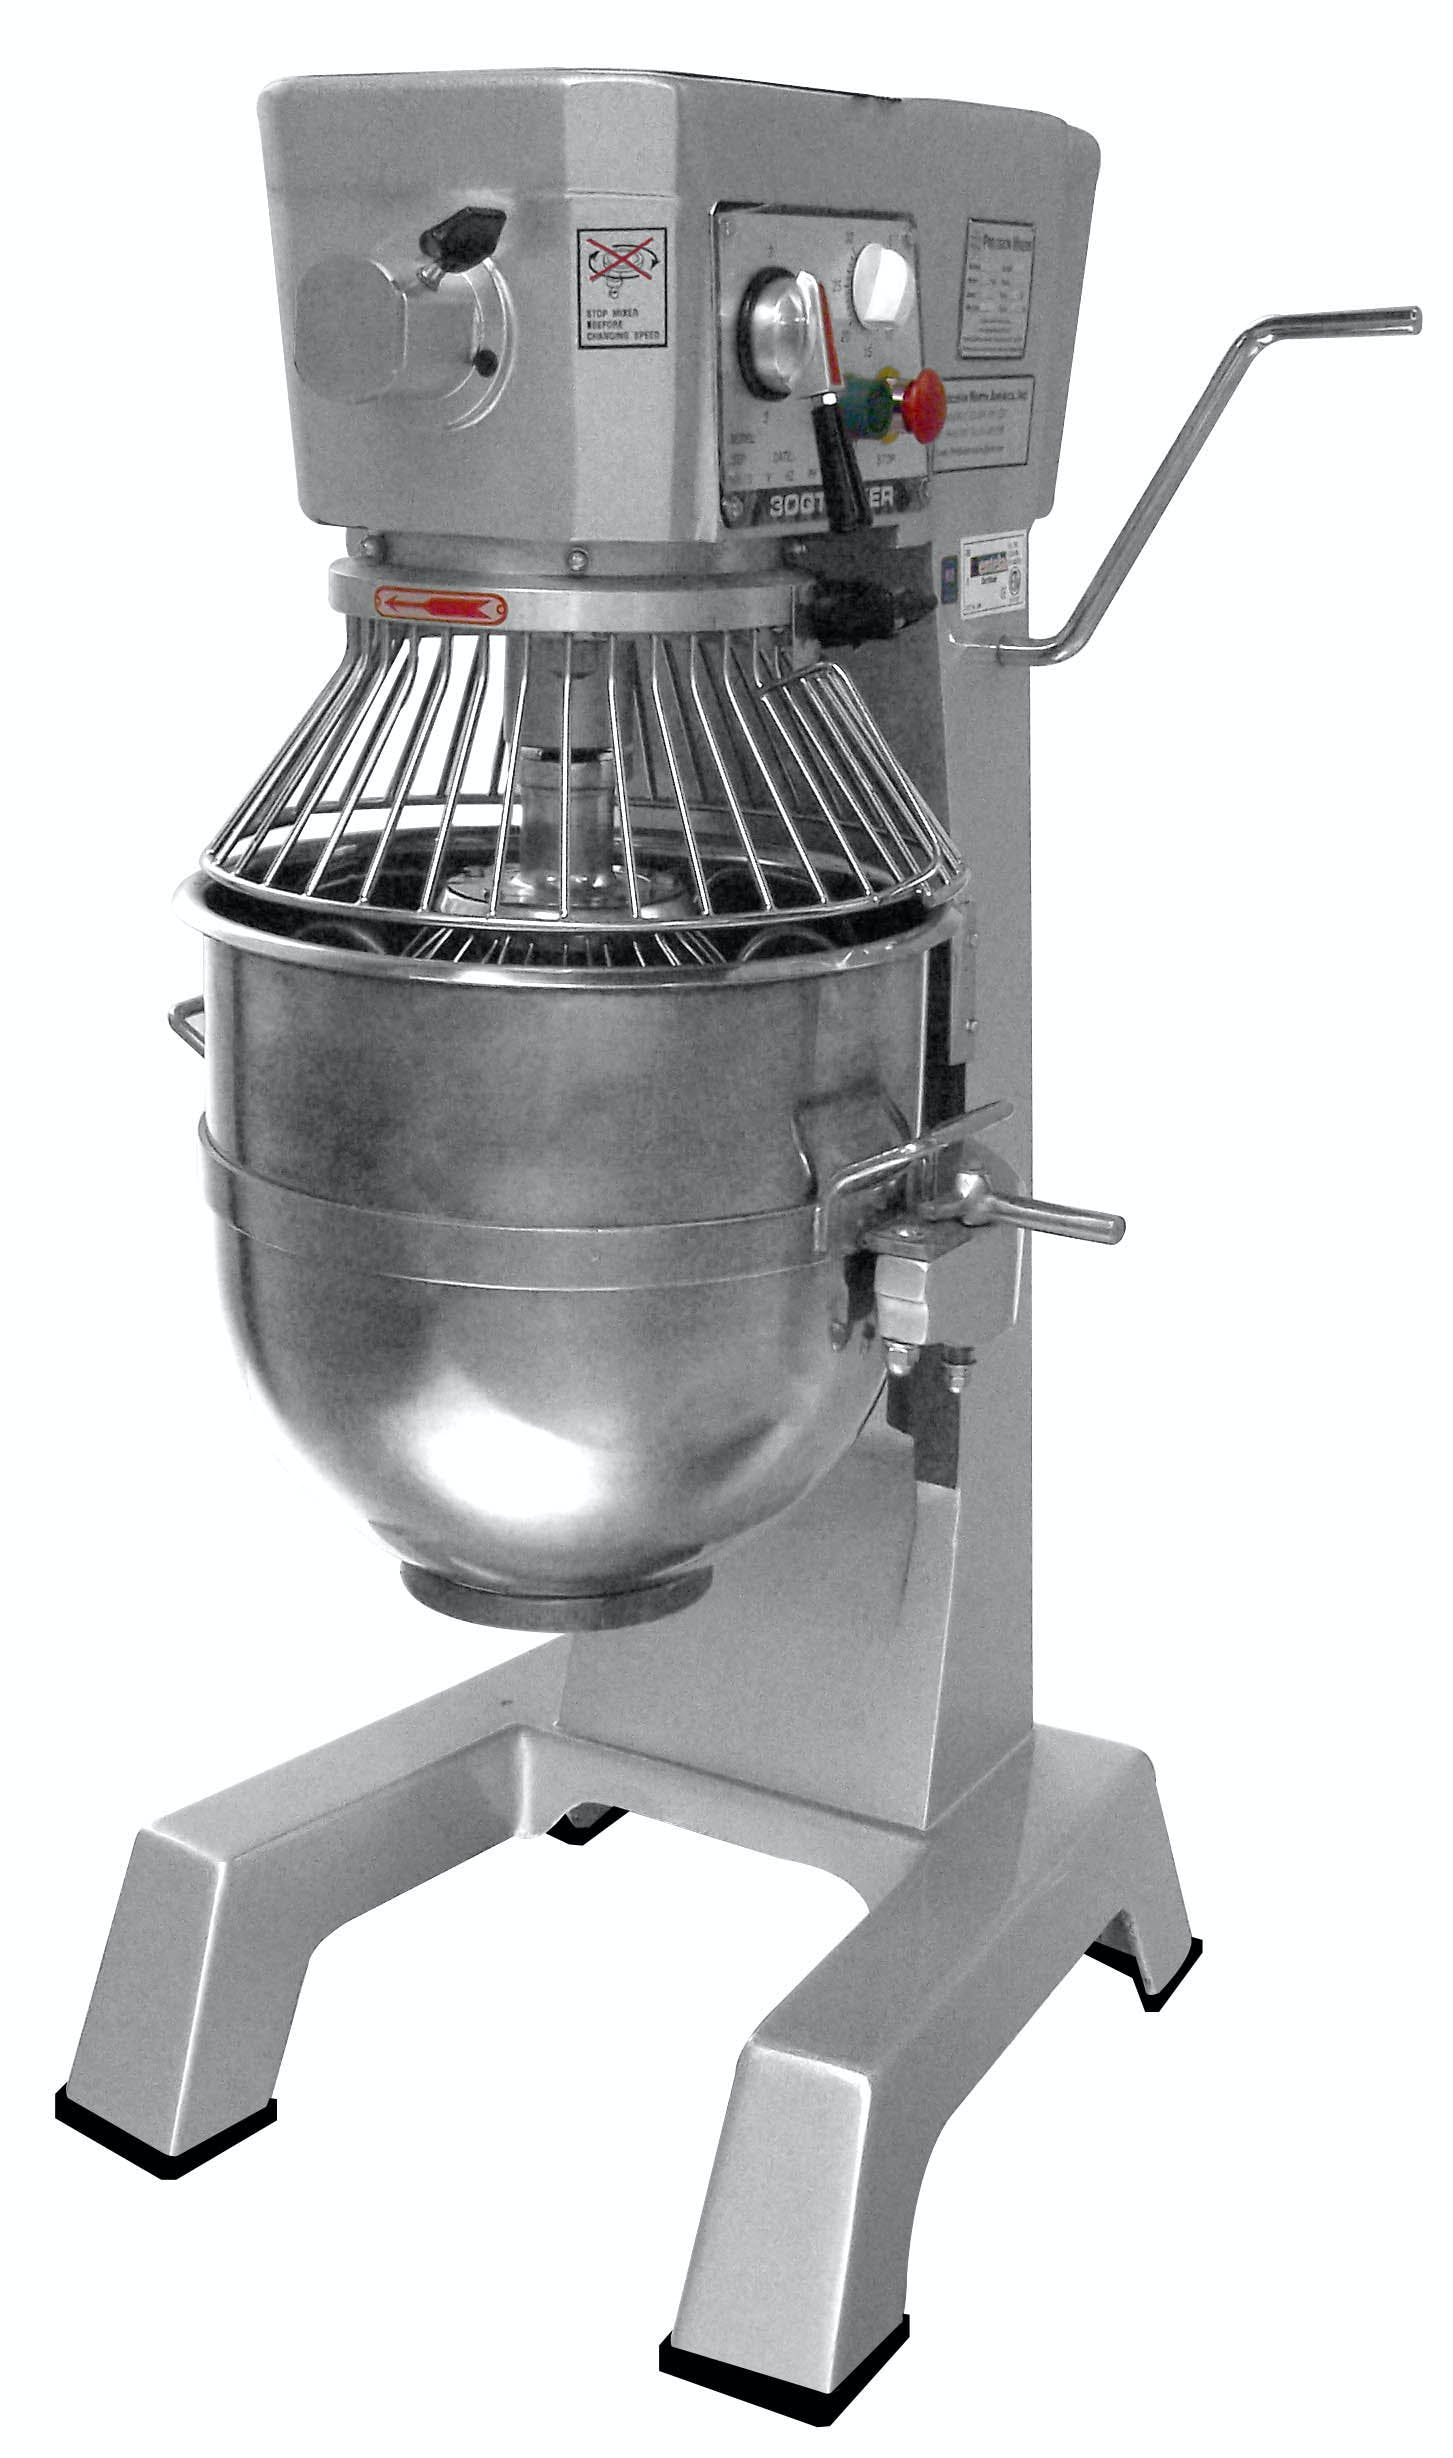 HUB-30 Mixer sold by Precision North America Food Machinery